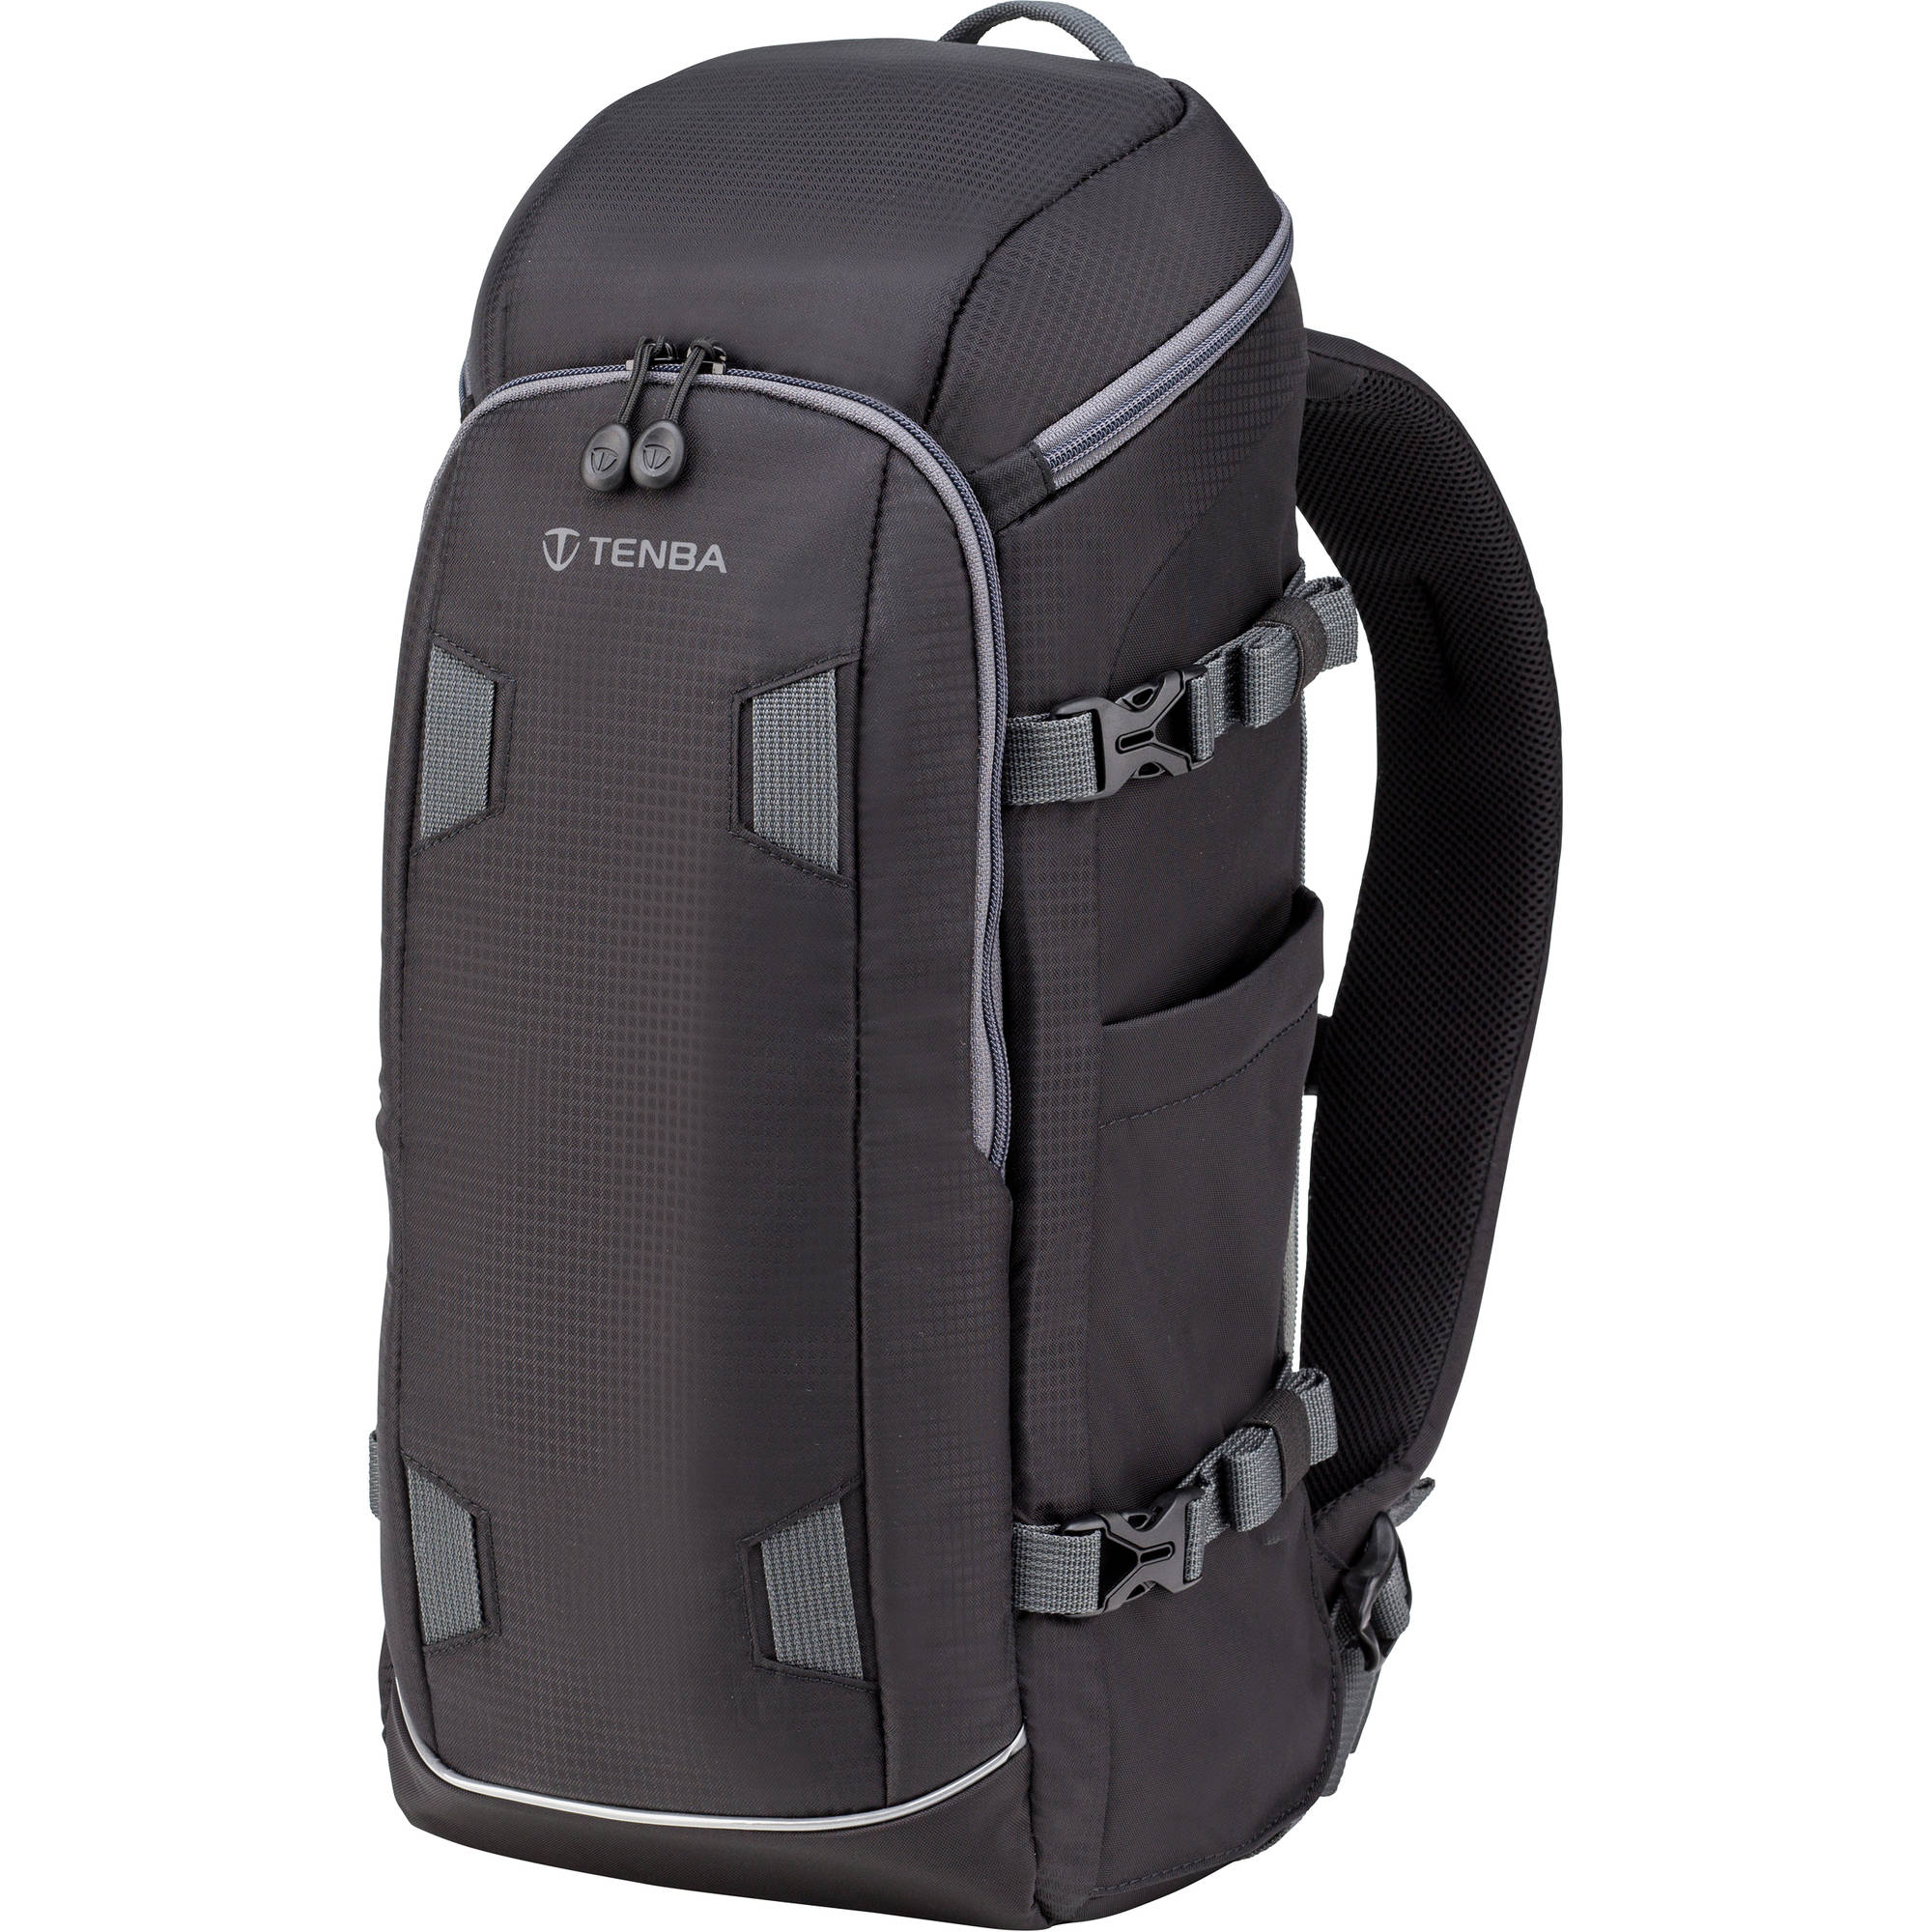 Tenba Solstice 12L Camera Backpack (Black)